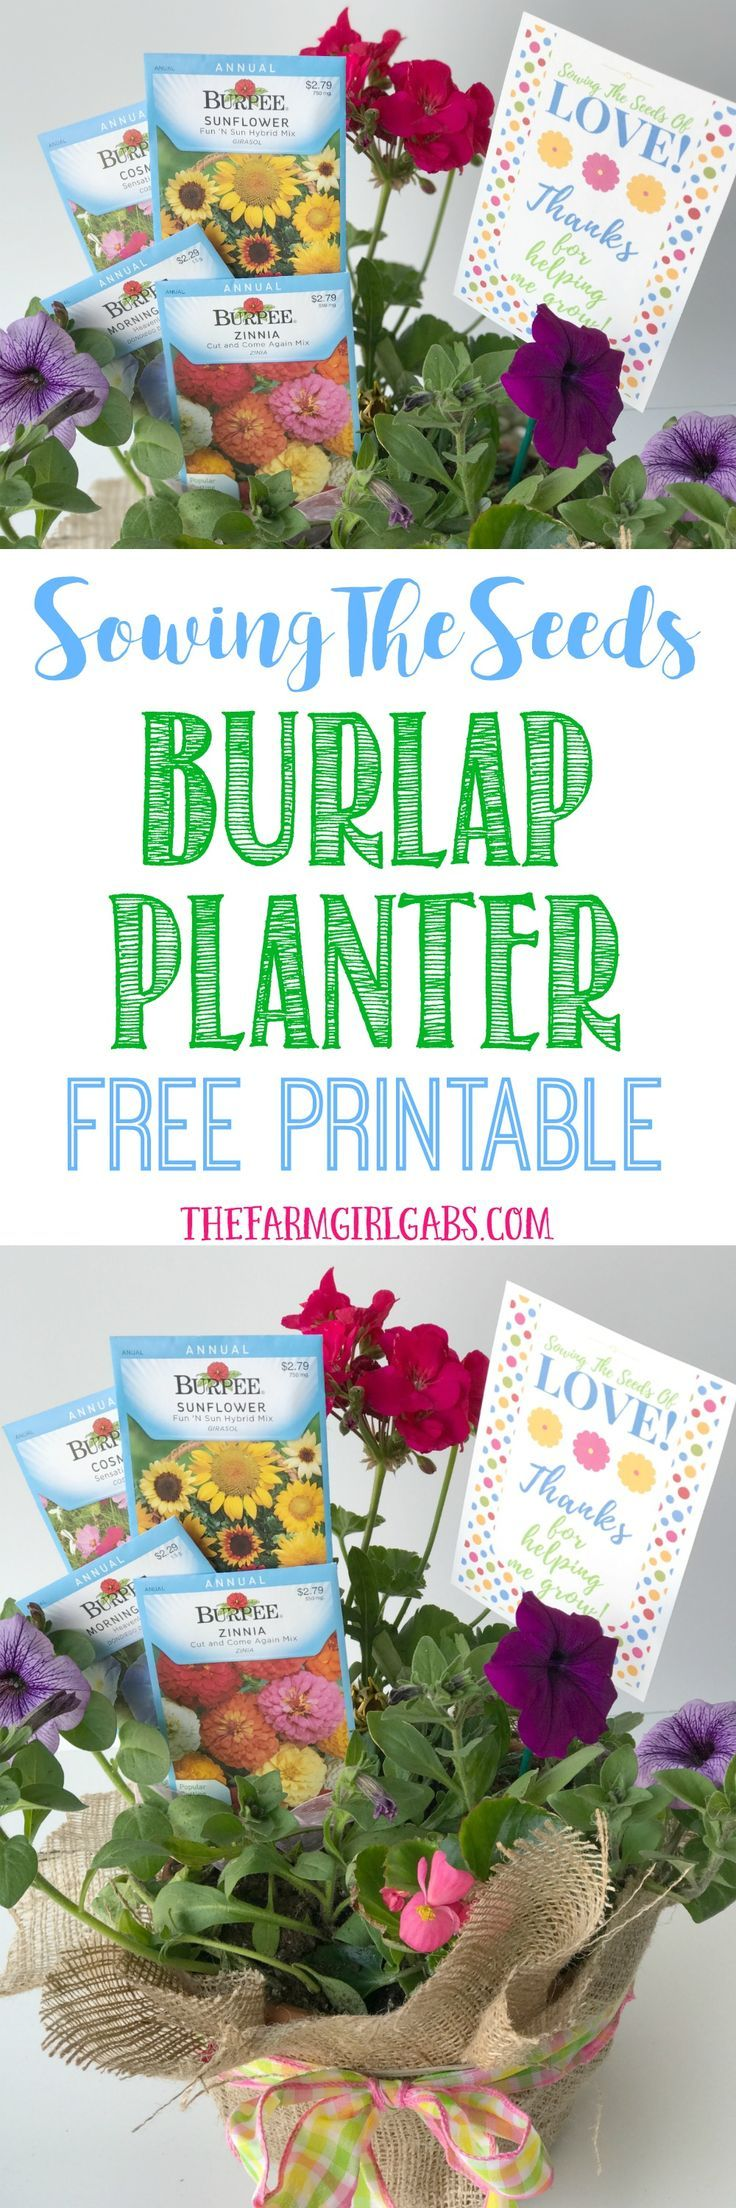 Sowing The Seeds Burlap Planter And Printable Homemade